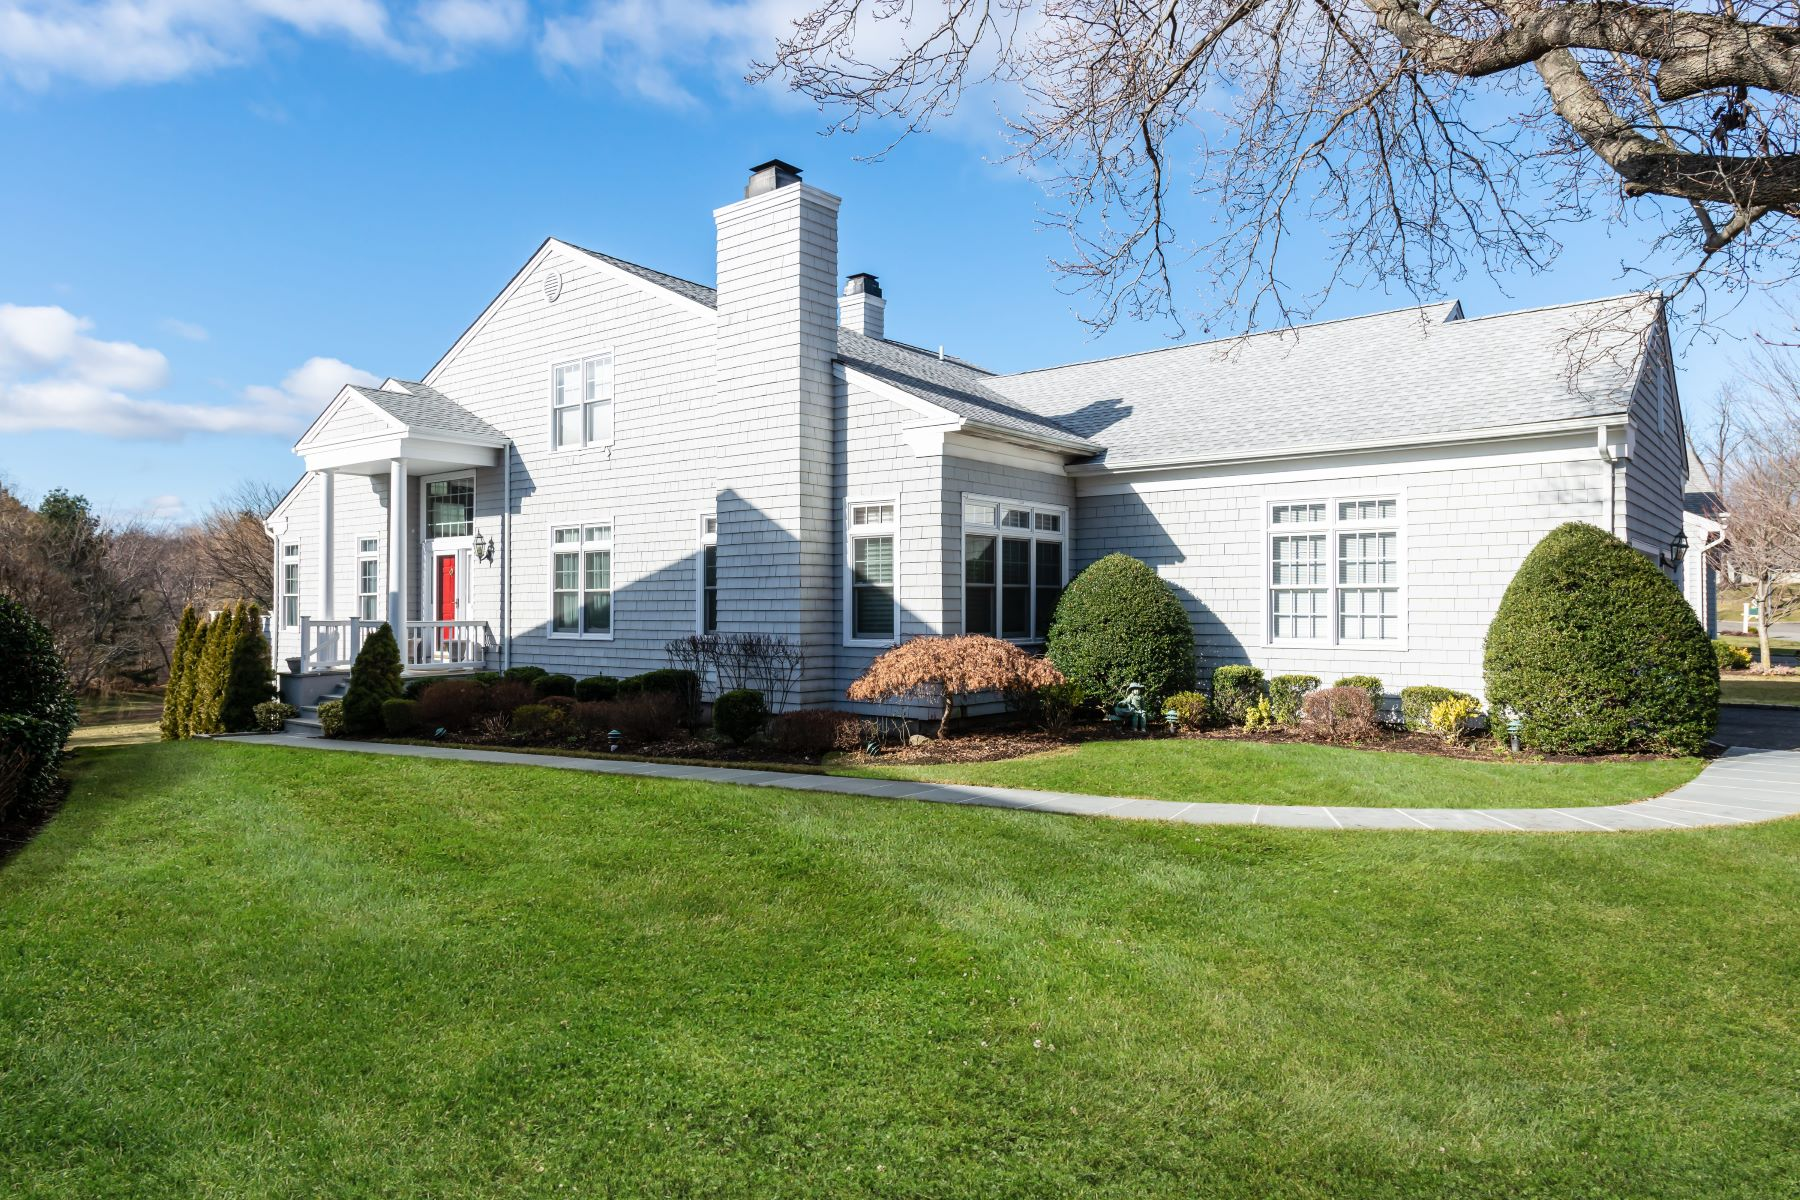 Single Family Homes for Active at Oyster Bay 13 Fieldstone Lane Oyster Bay, New York 11771 United States